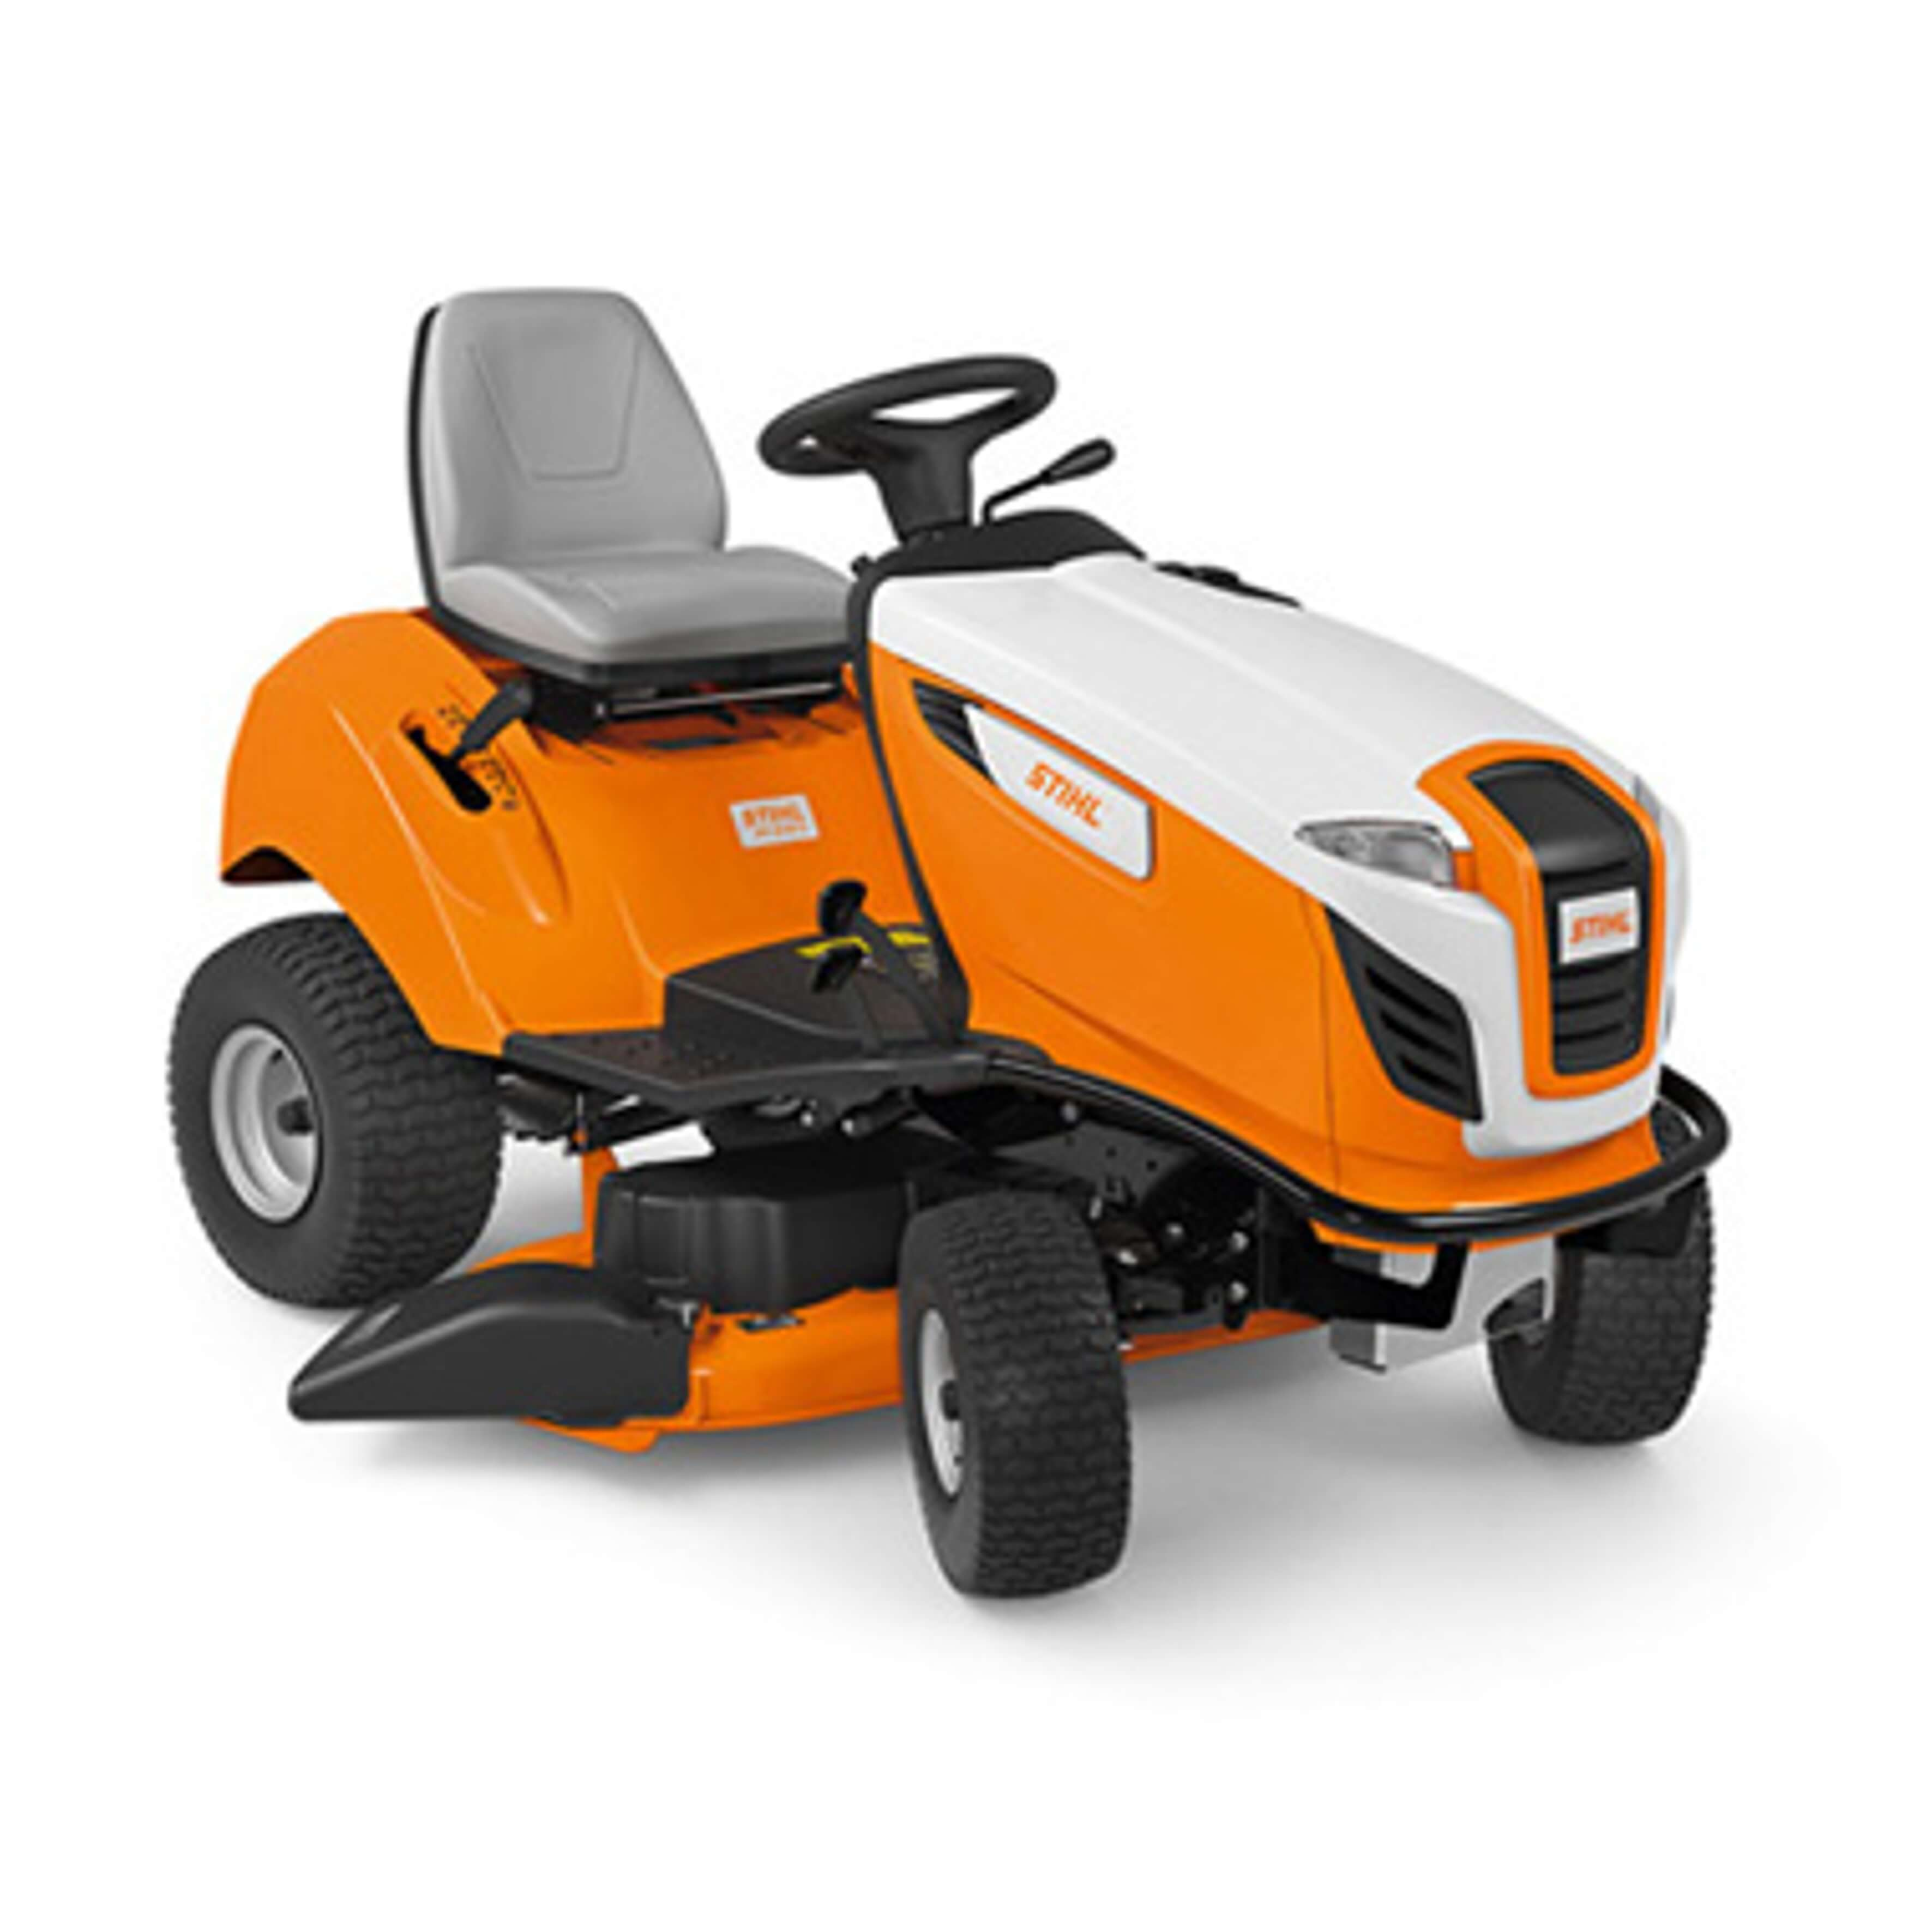 Stihl RT 4112.0 S Ride on Mower Parts